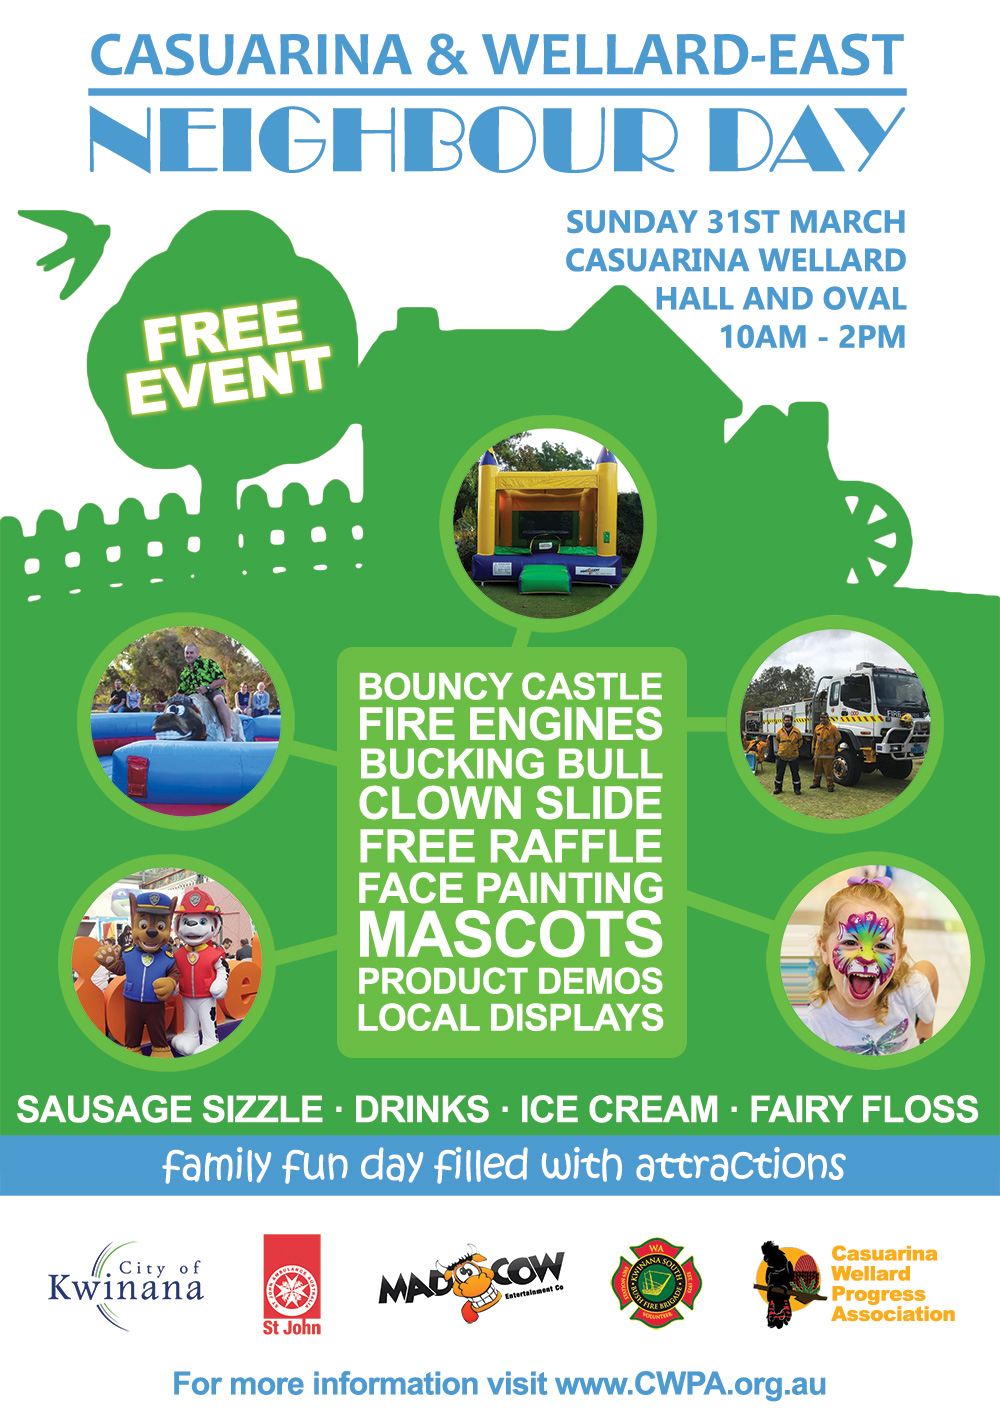 Casuarina Wellard Progress Association - Neighbour Day 2019